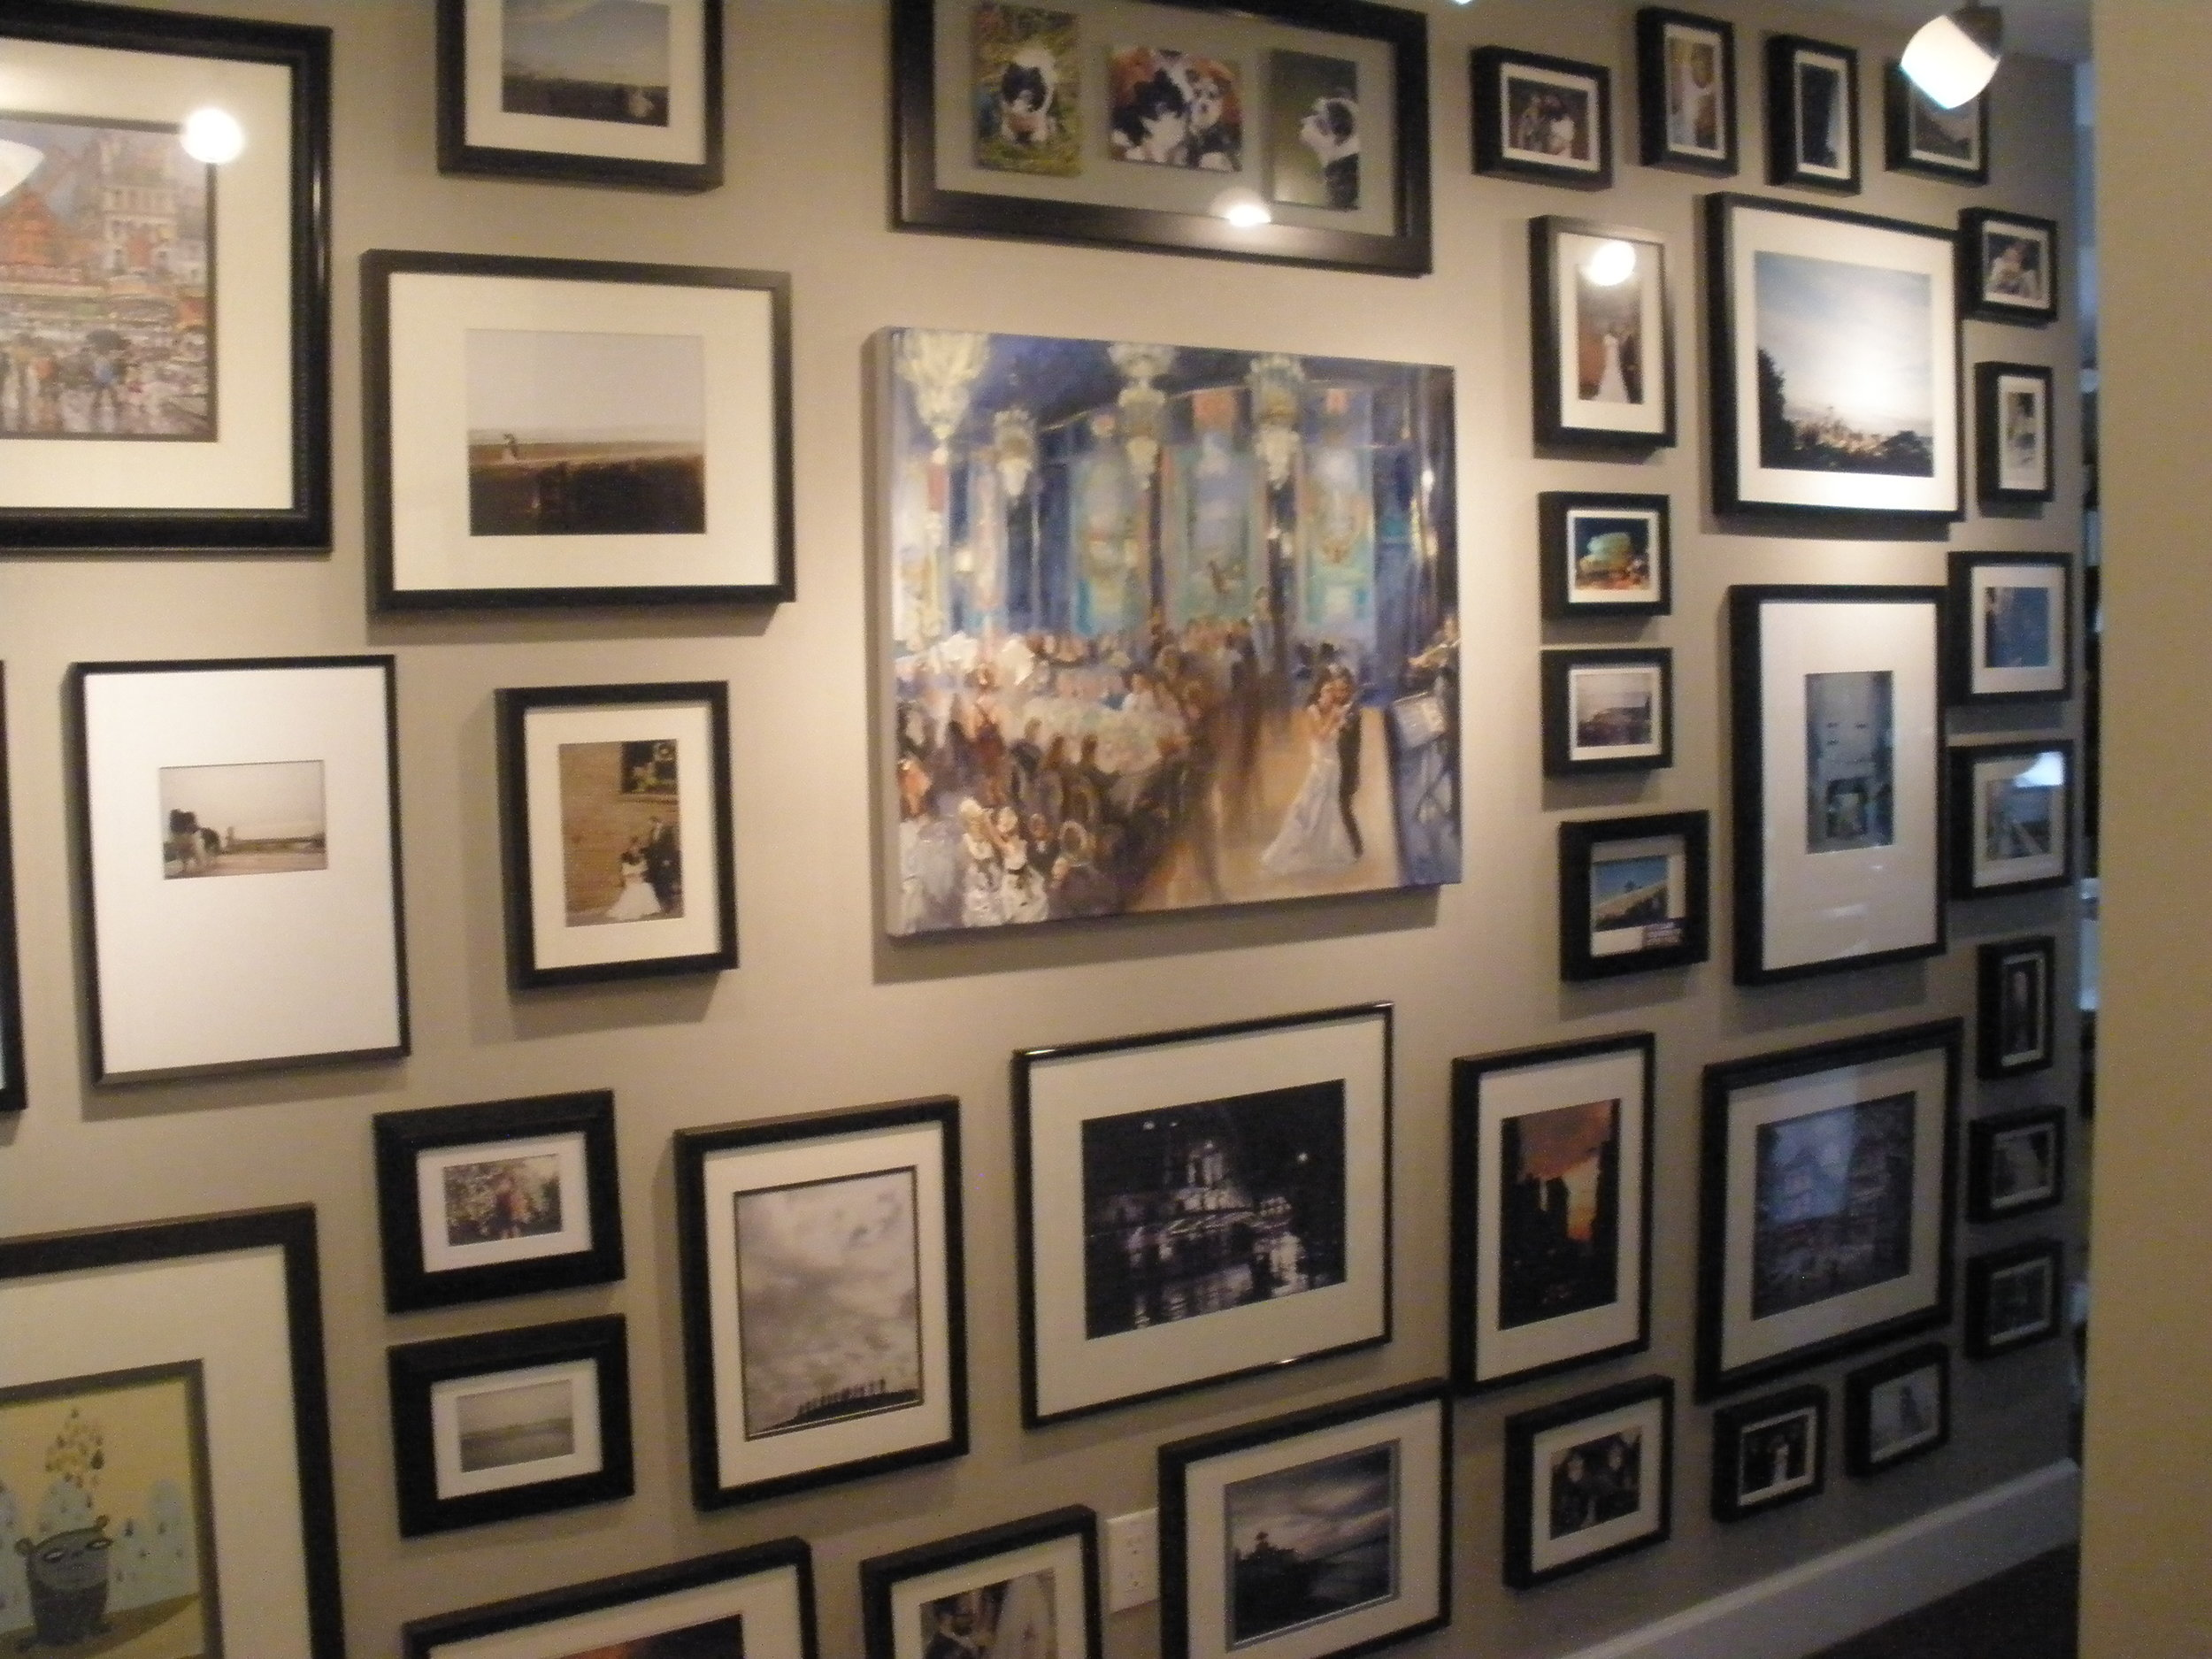 gallery-wall-previous-1.jpg